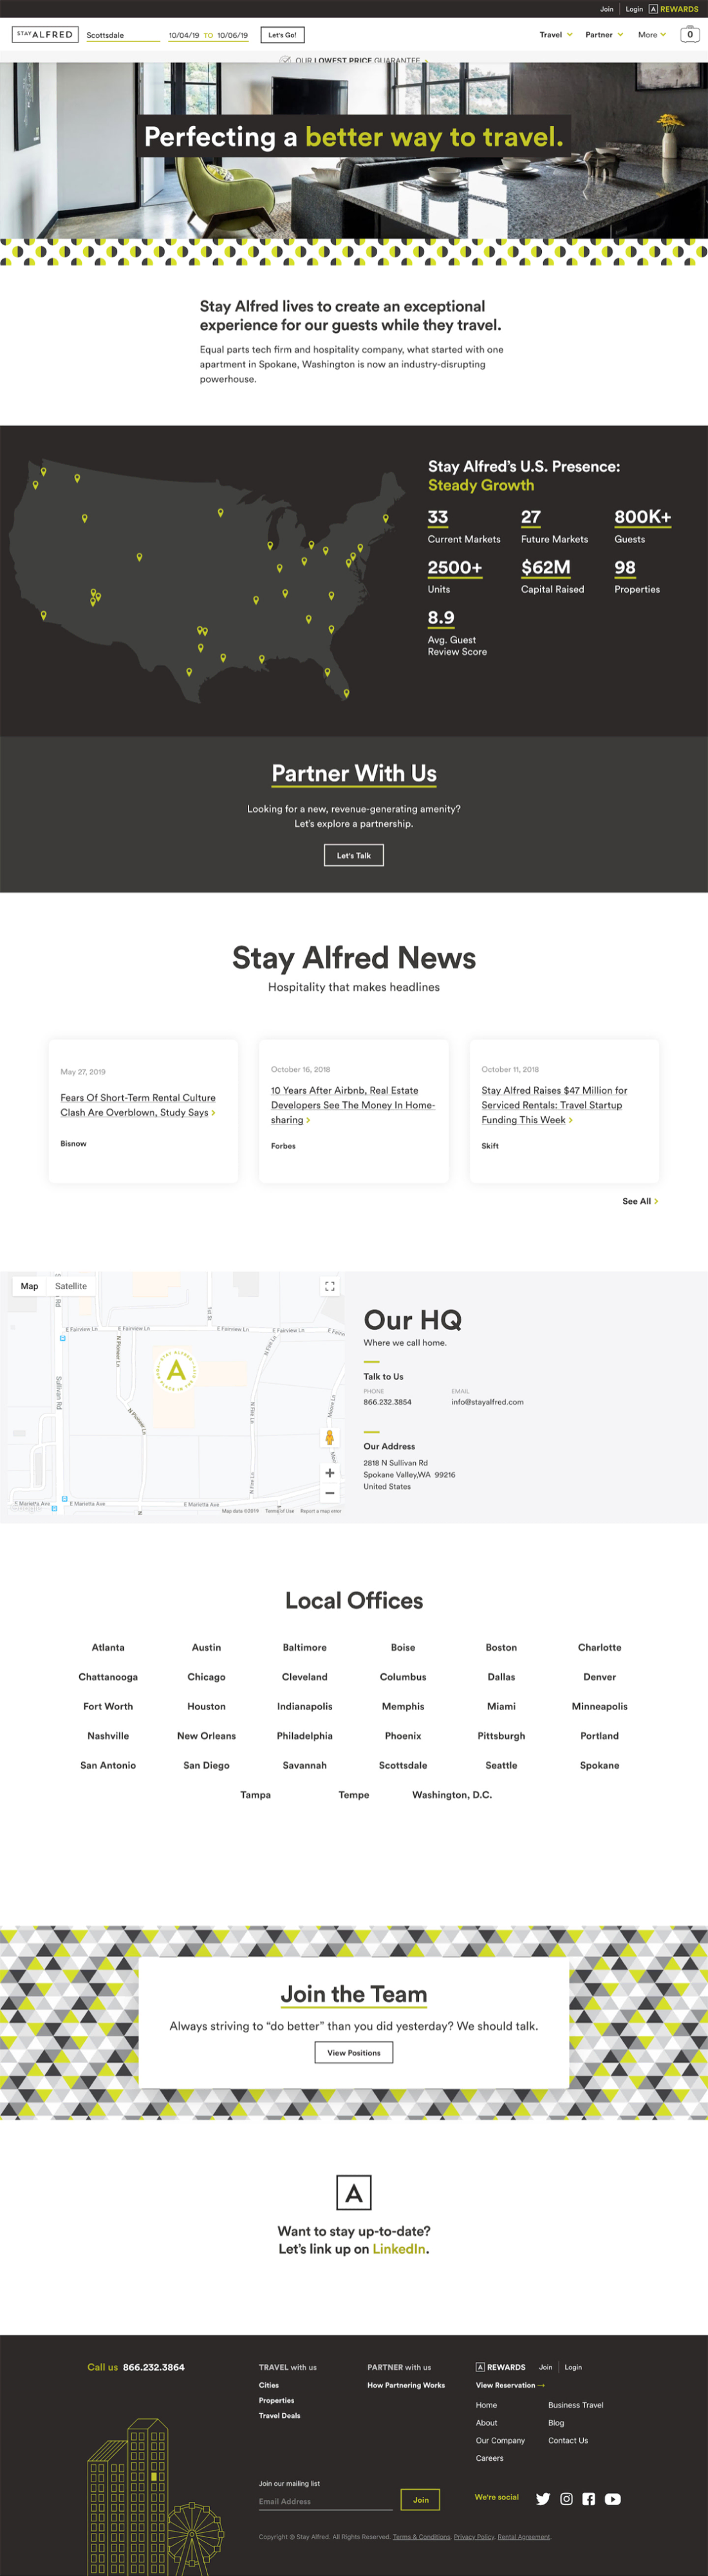 Stay Alfred Company Page V2